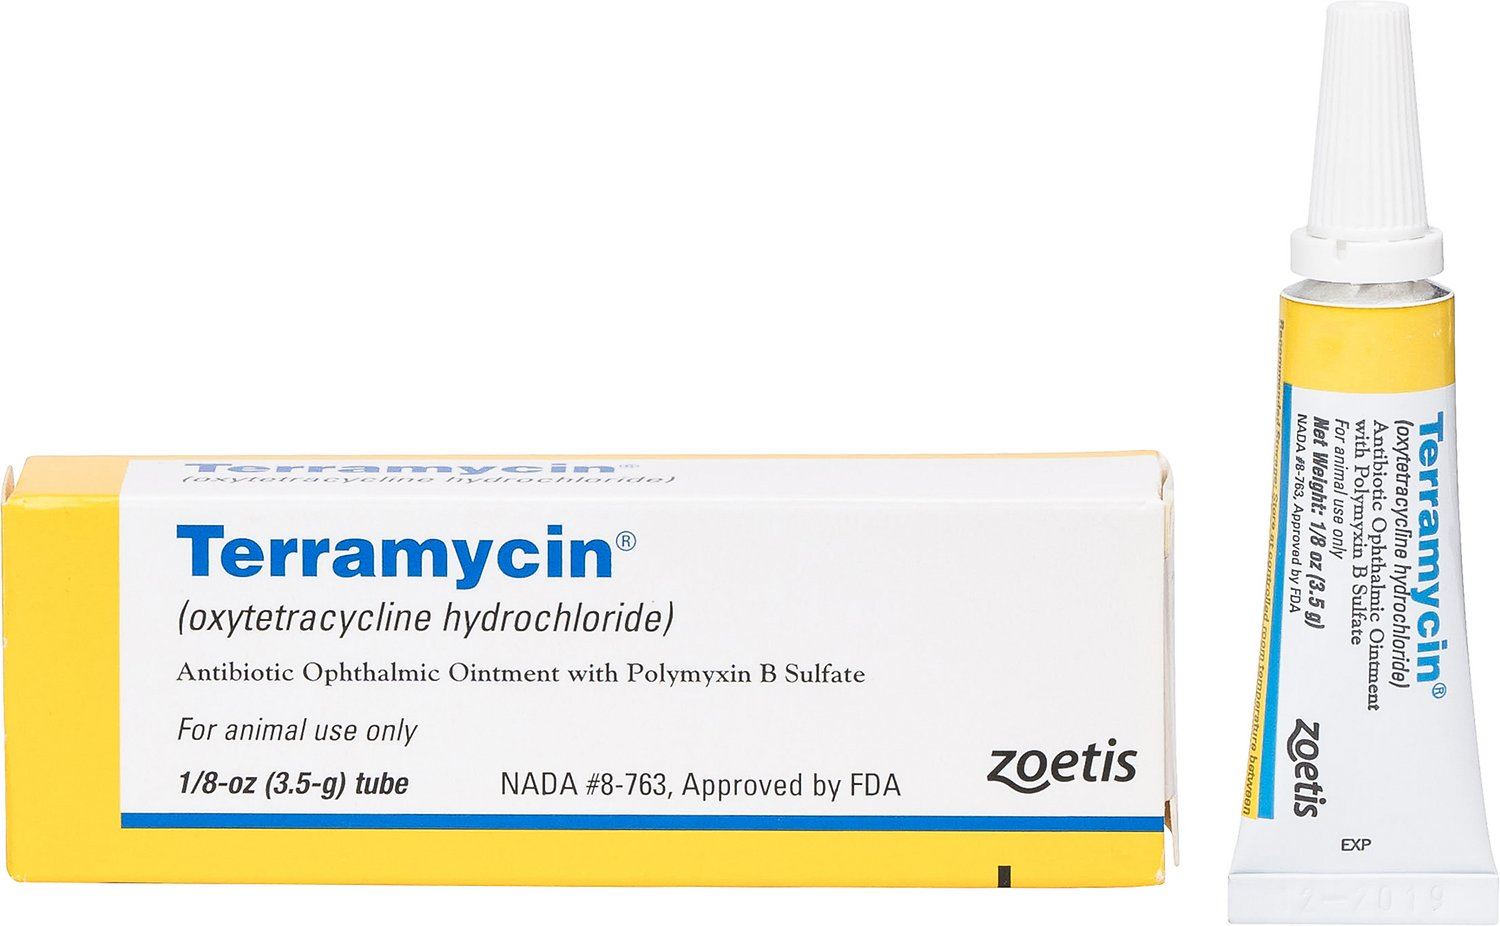 Terramycin eye ointment for dogs eye infections